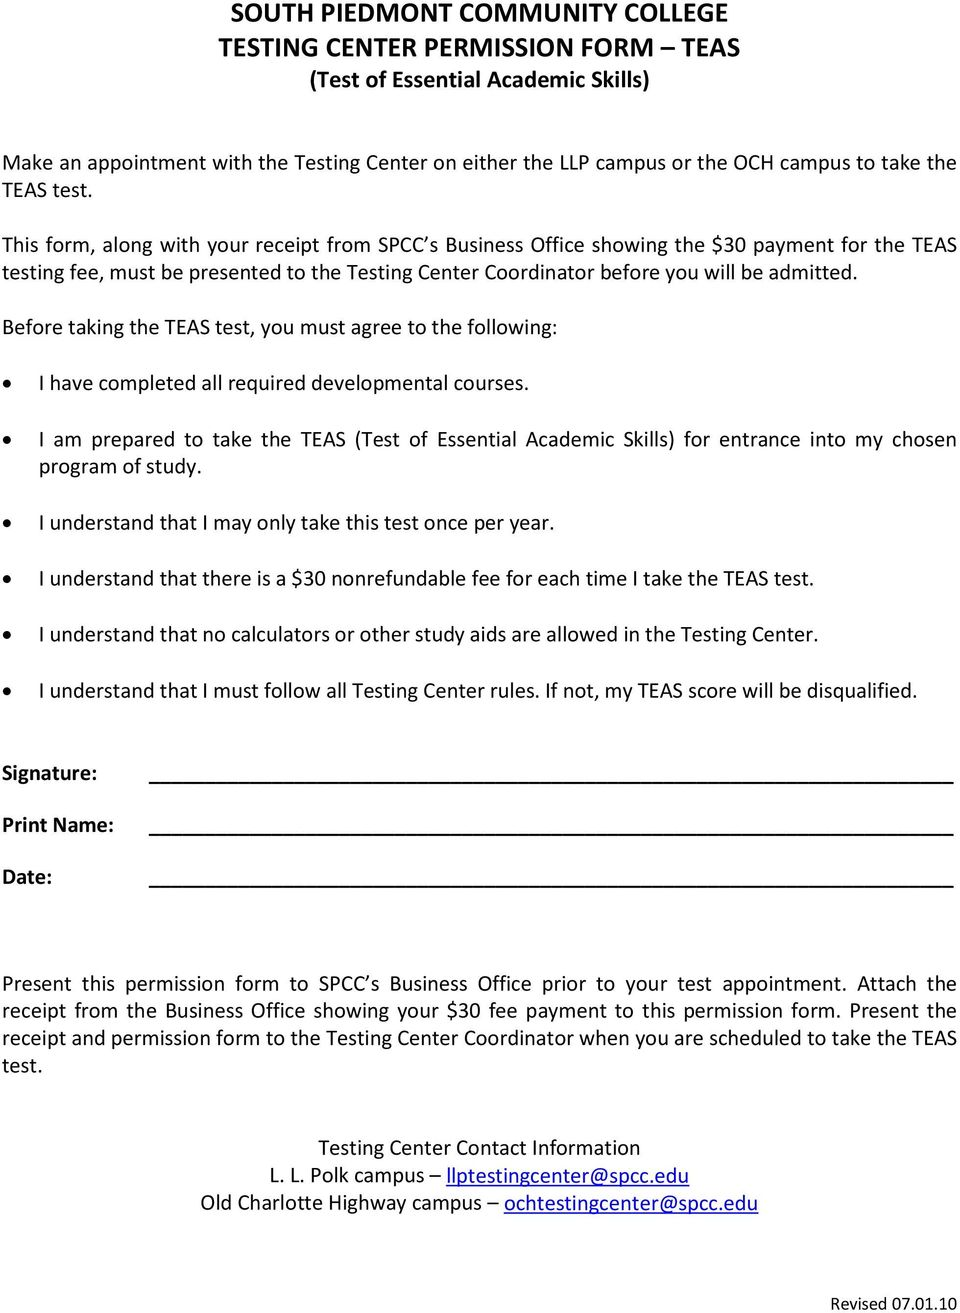 This form, along with your receipt from SPCC s Business Office showing the $30 payment for the TEAS testing fee, must be presented to the Testing Center Coordinator before you will be admitted.